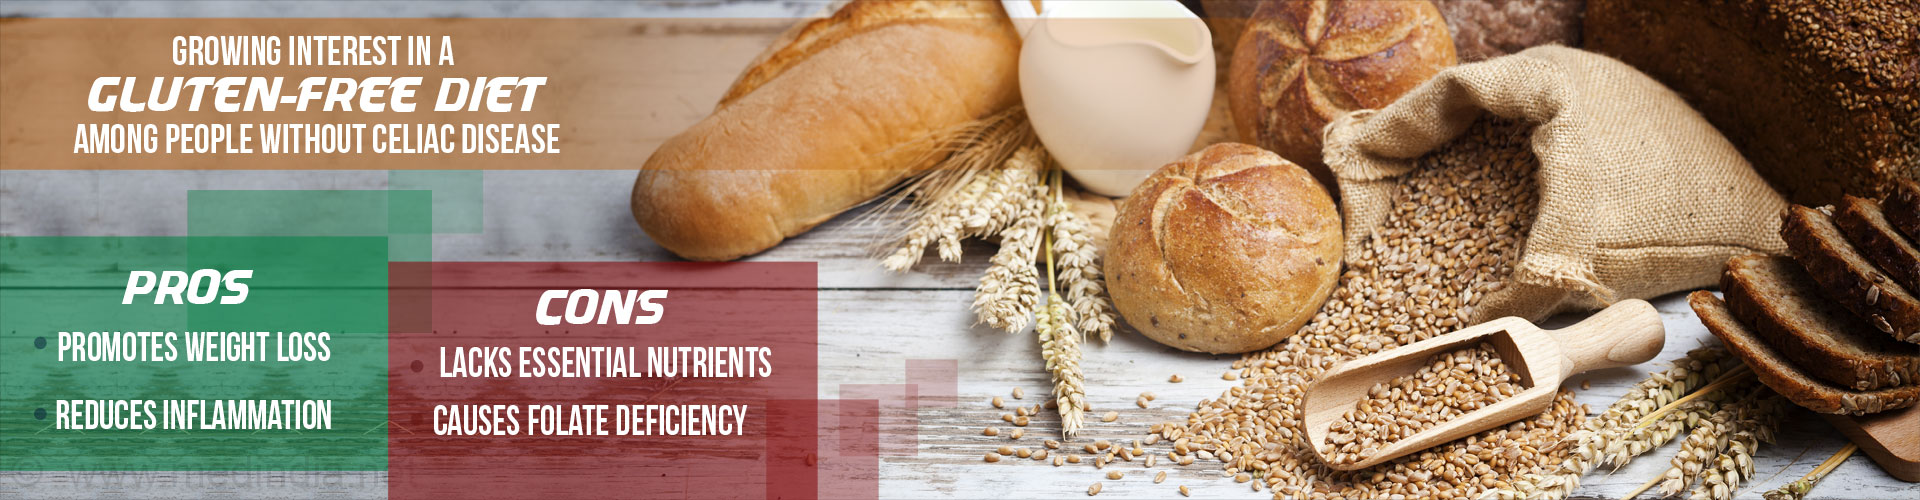 Gluten-Free Diet Followers on the Rise Among People Without Celiac Disease